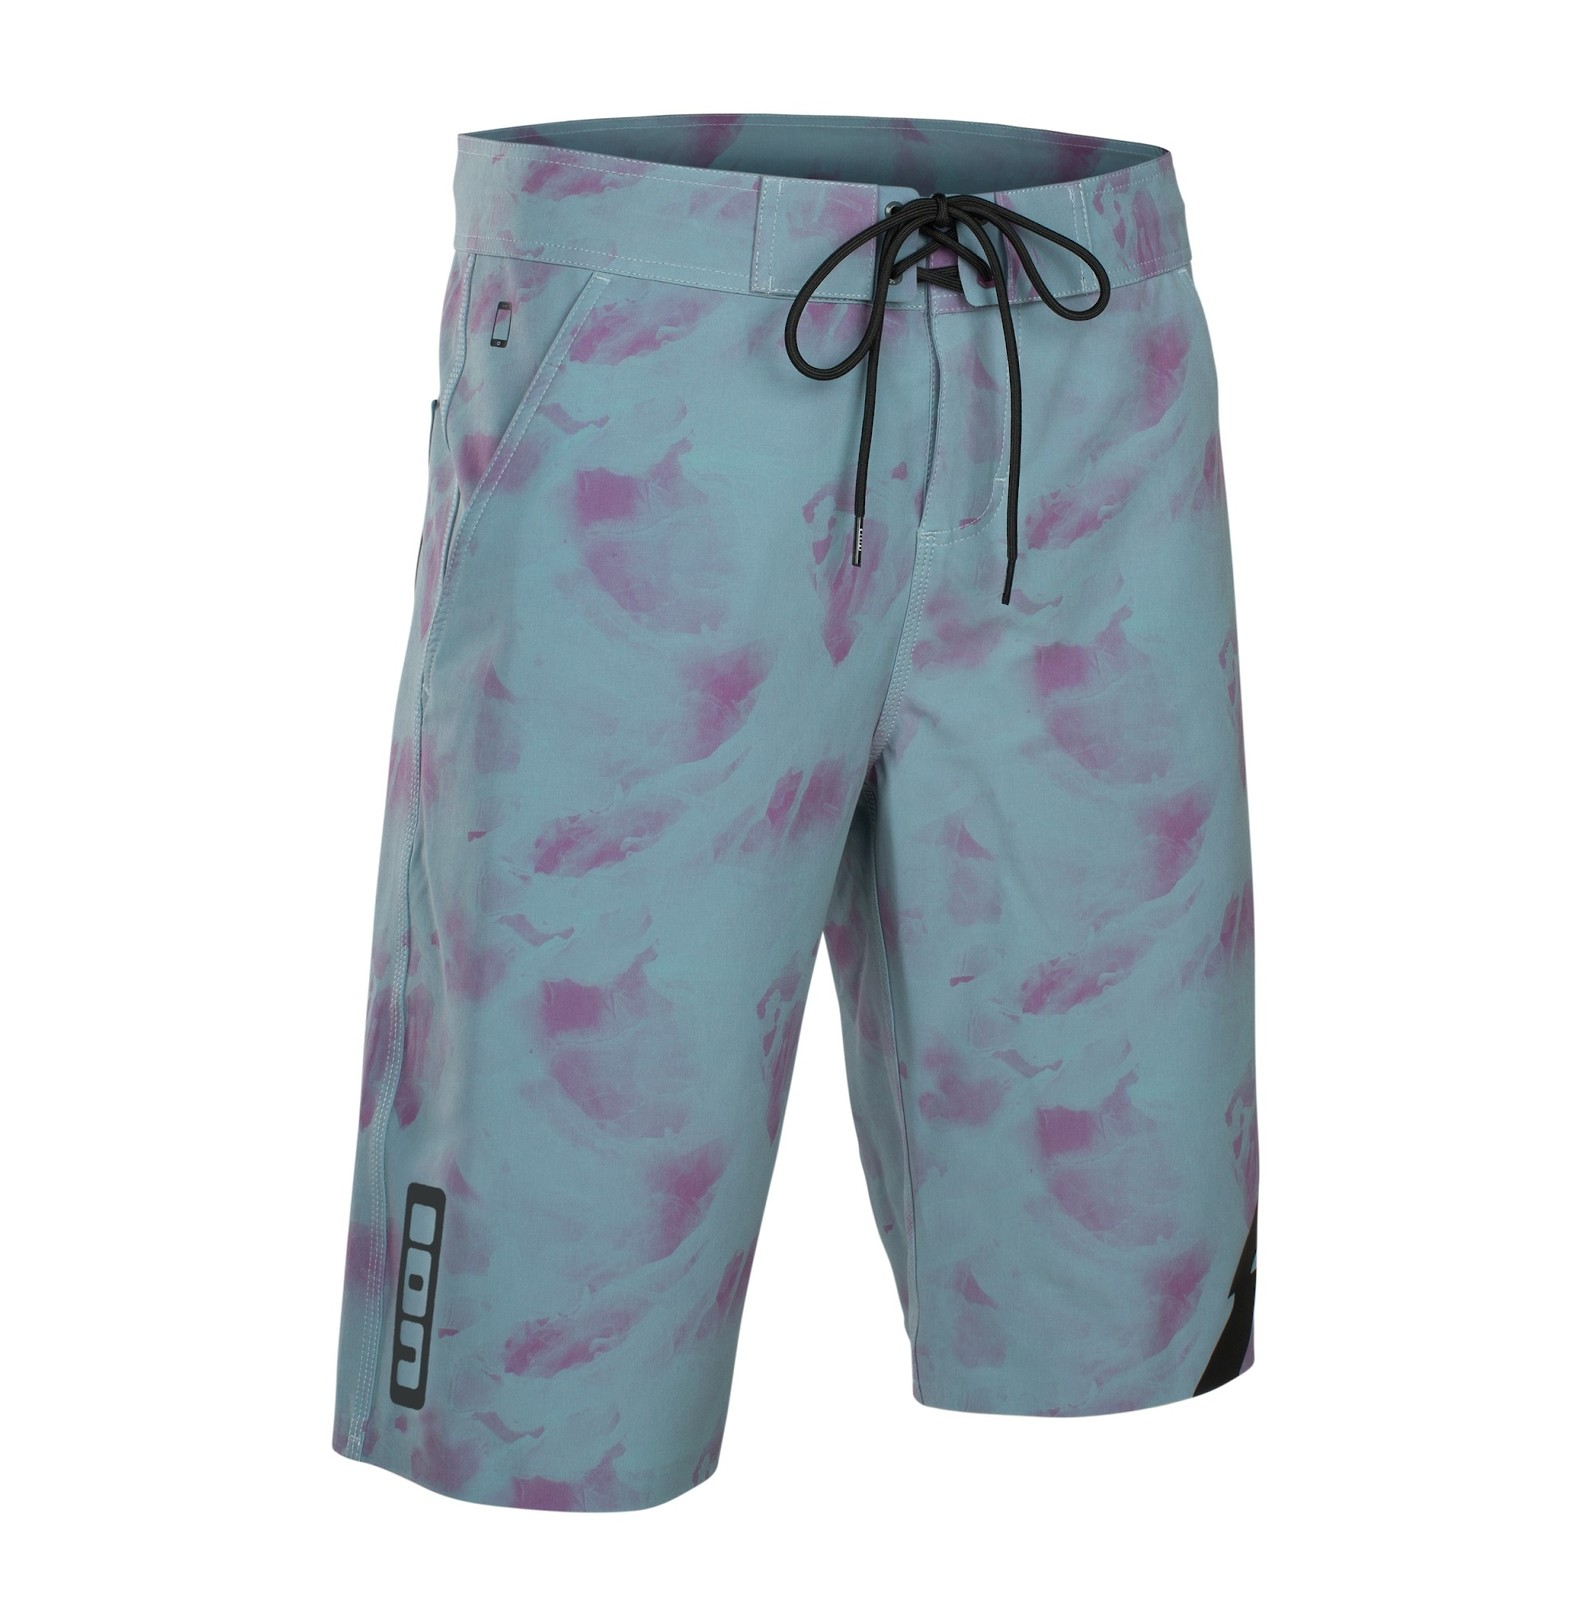 ION Seek Amp Riding Short (2019 Pink Isover)